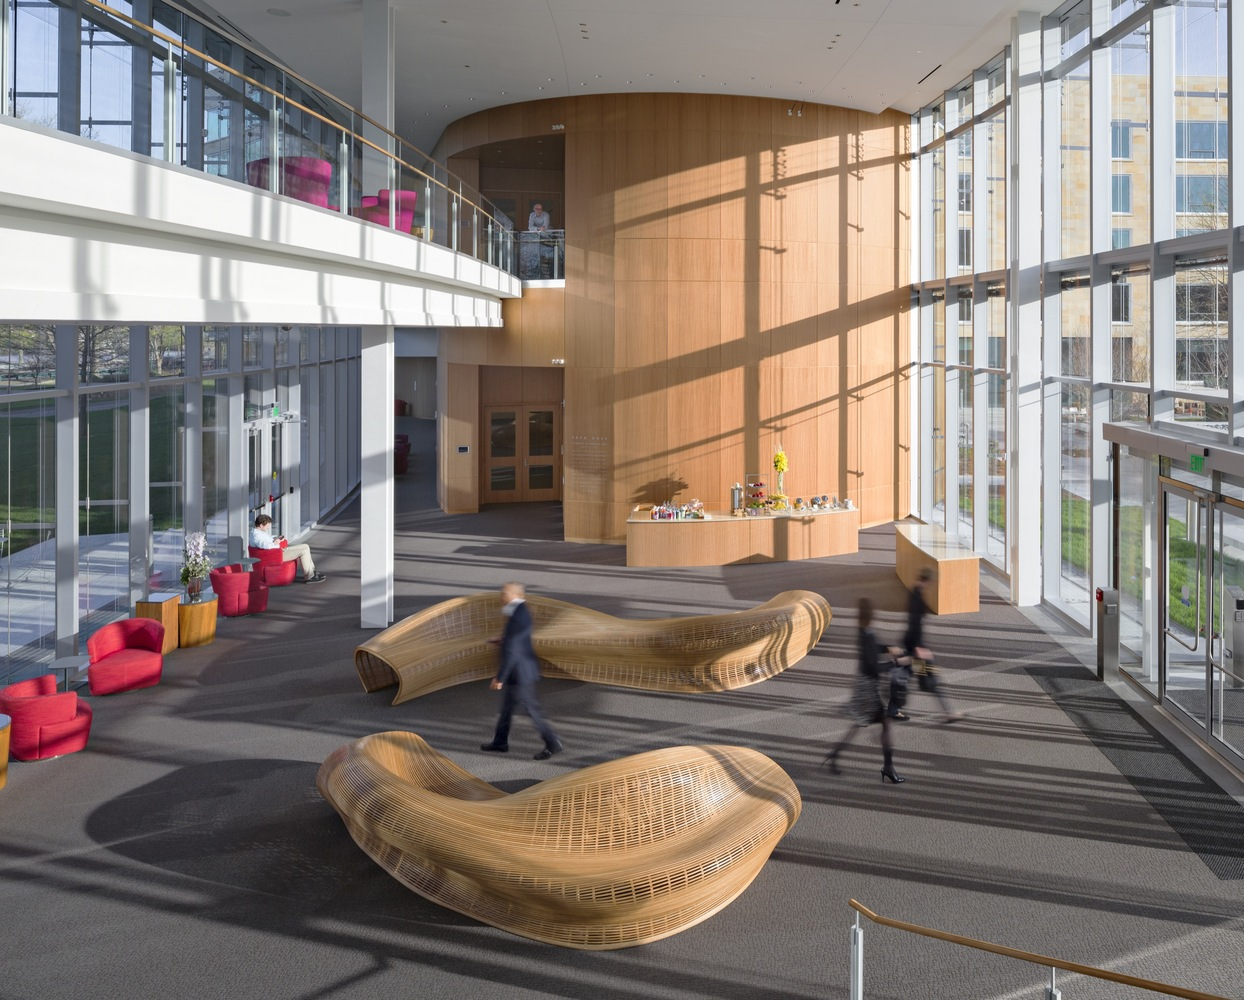 12 Projects Announced As Winners Of 2016 AIA Education Facility Design  Awards,Award Of Merit